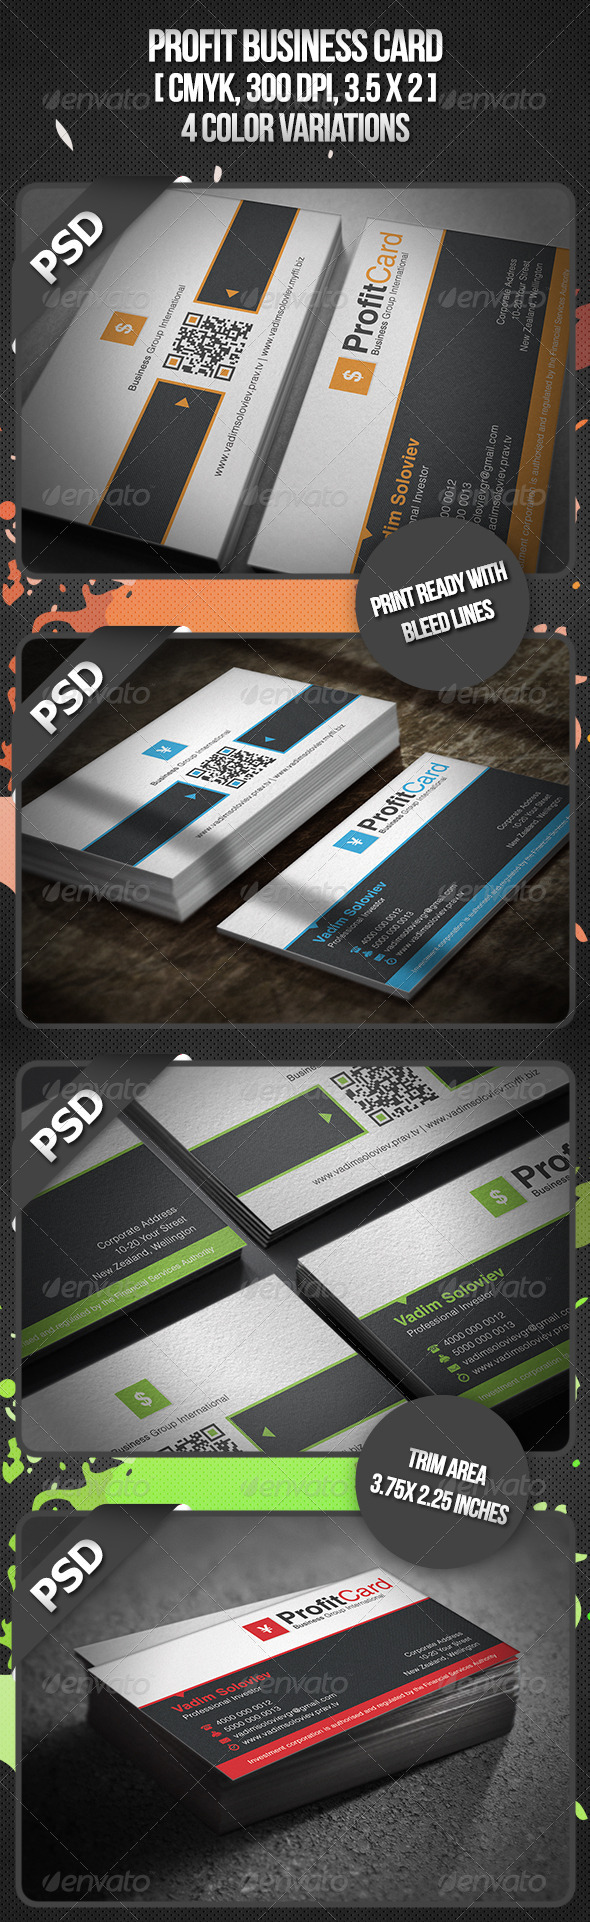 Profit Business Card - Corporate Business Cards